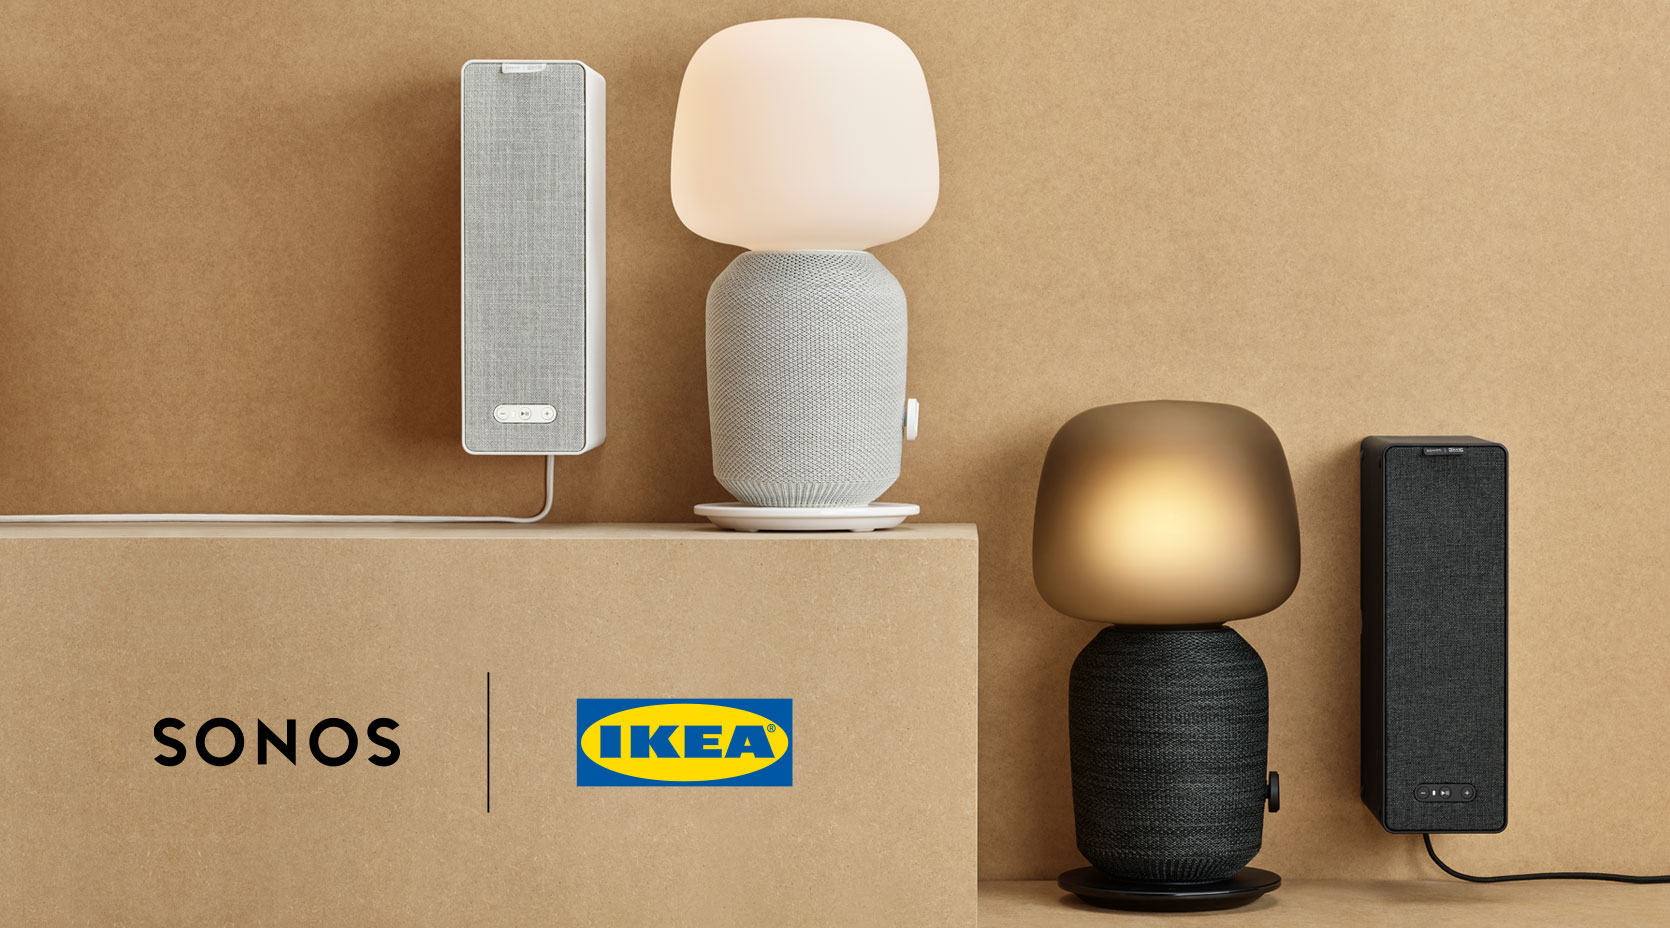 Symfonisk Stereo Furniture By Sonos And Ikea Sonos